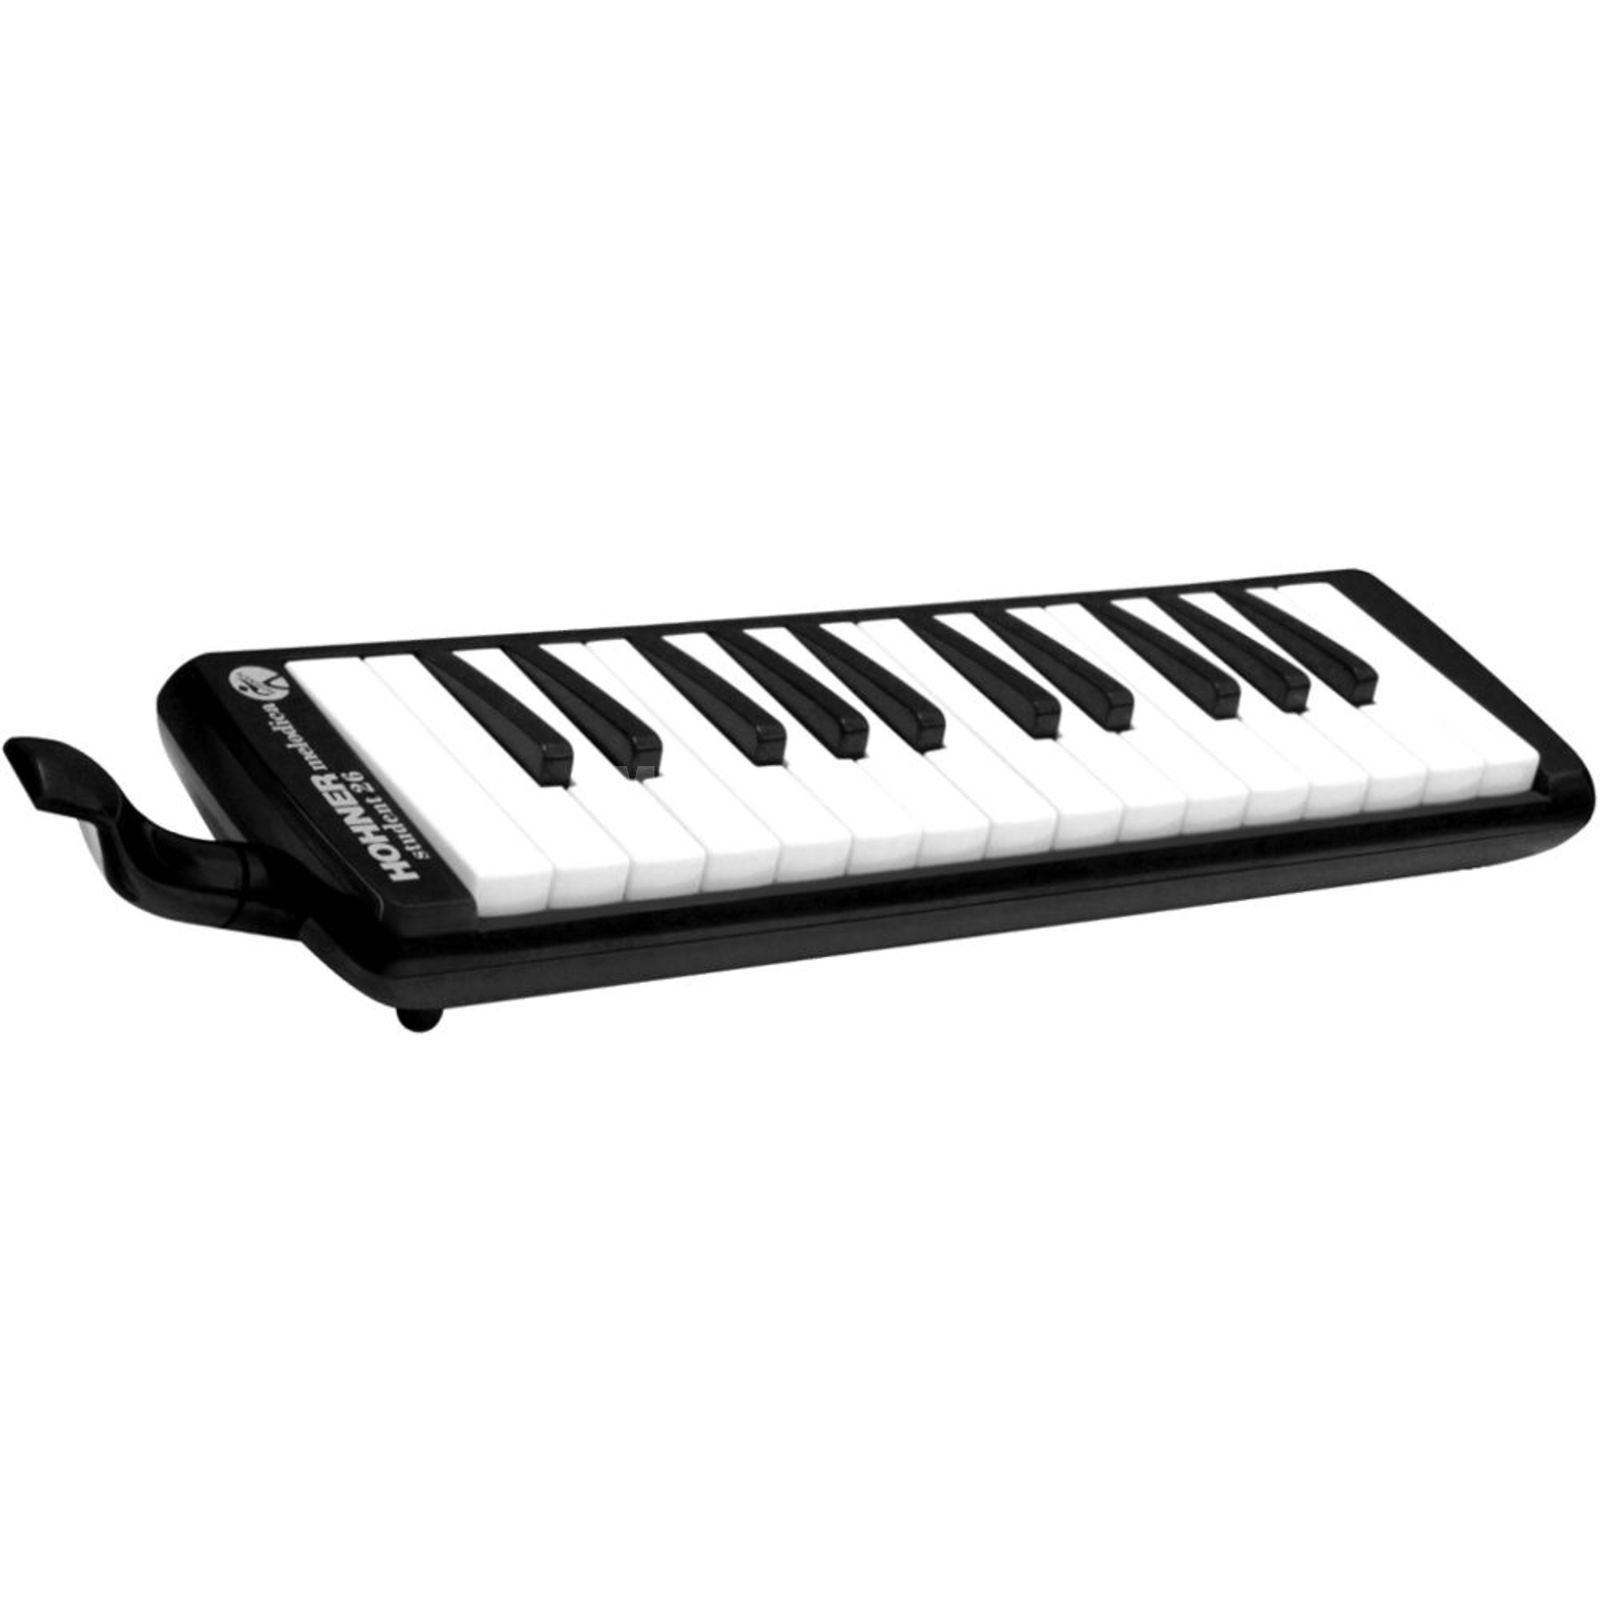 Hohner Student Melodica 26 - Black incl. Bag and Accessories Zdjęcie produktu